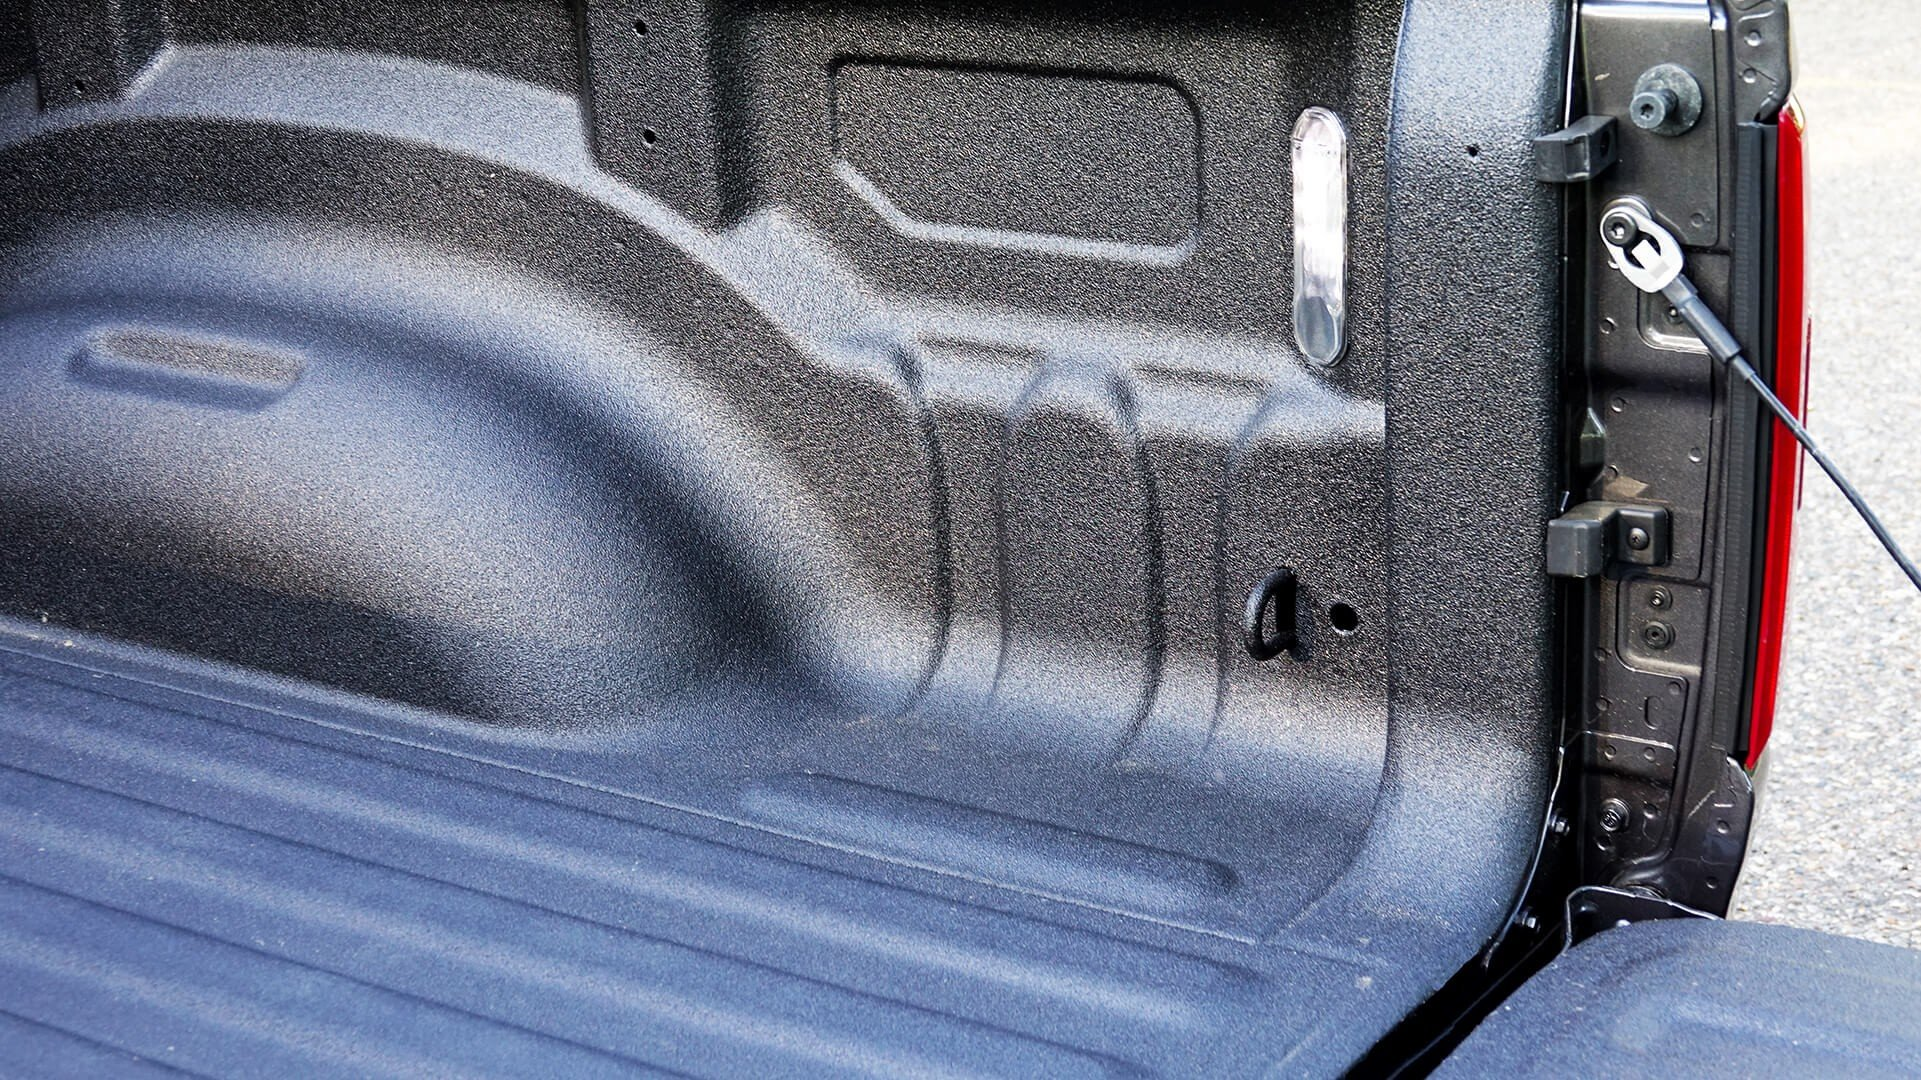 Spray-in bedliner on a RAM truck